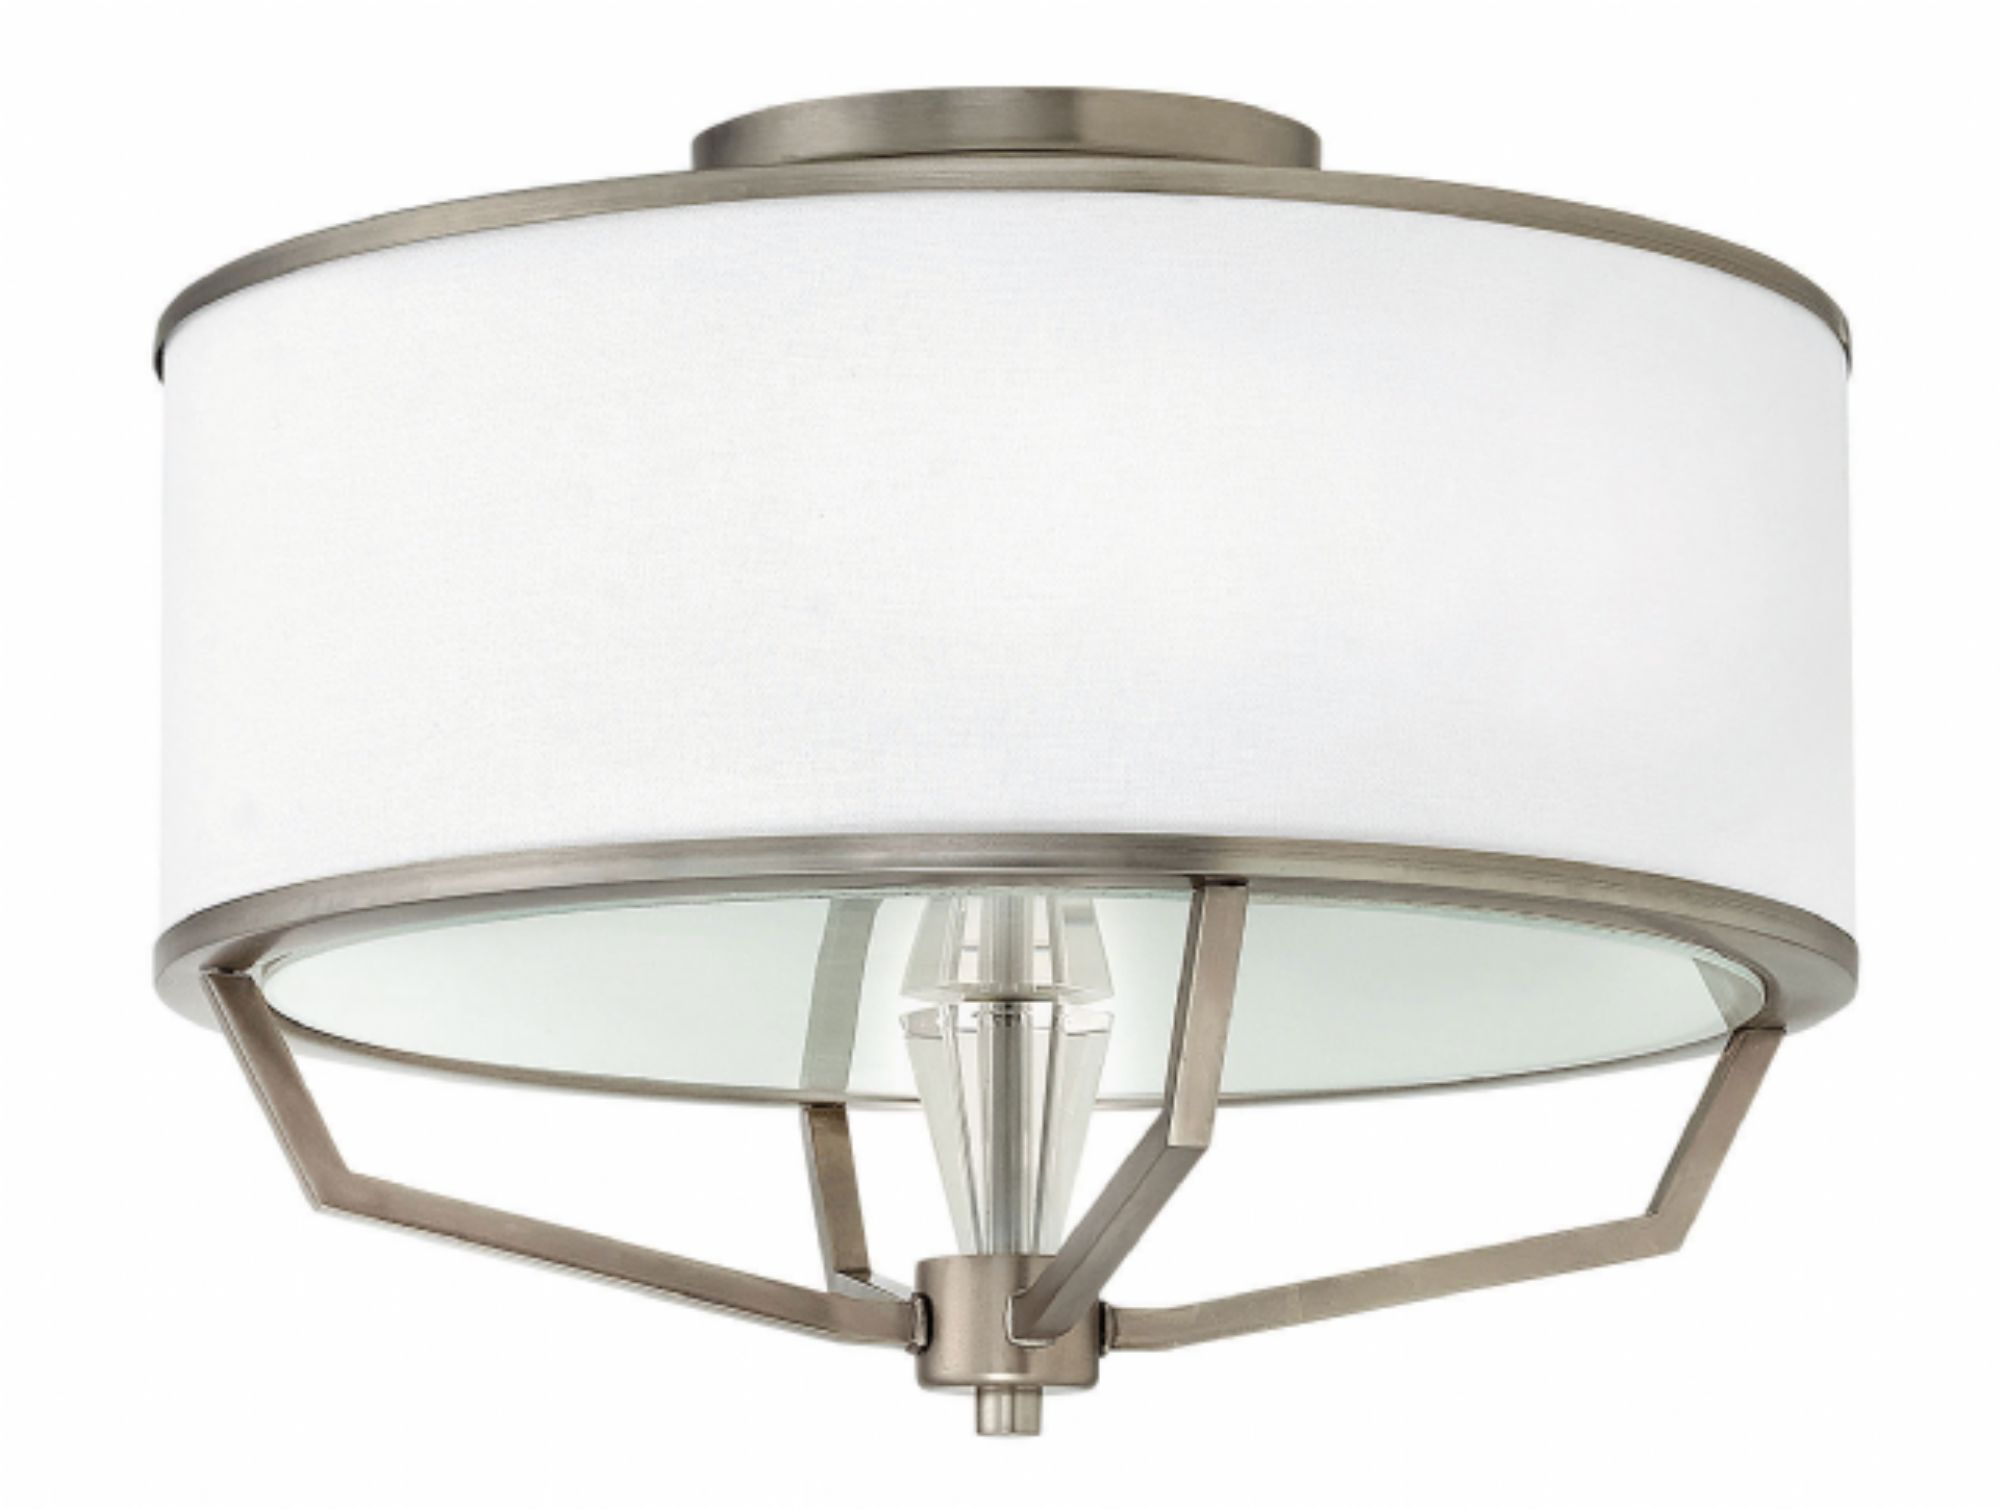 Hinkley lighting larchmere 4483en senior co op 3 pinterest hinkley larchmere close to ceiling light fixtures english nickel arubaitofo Gallery